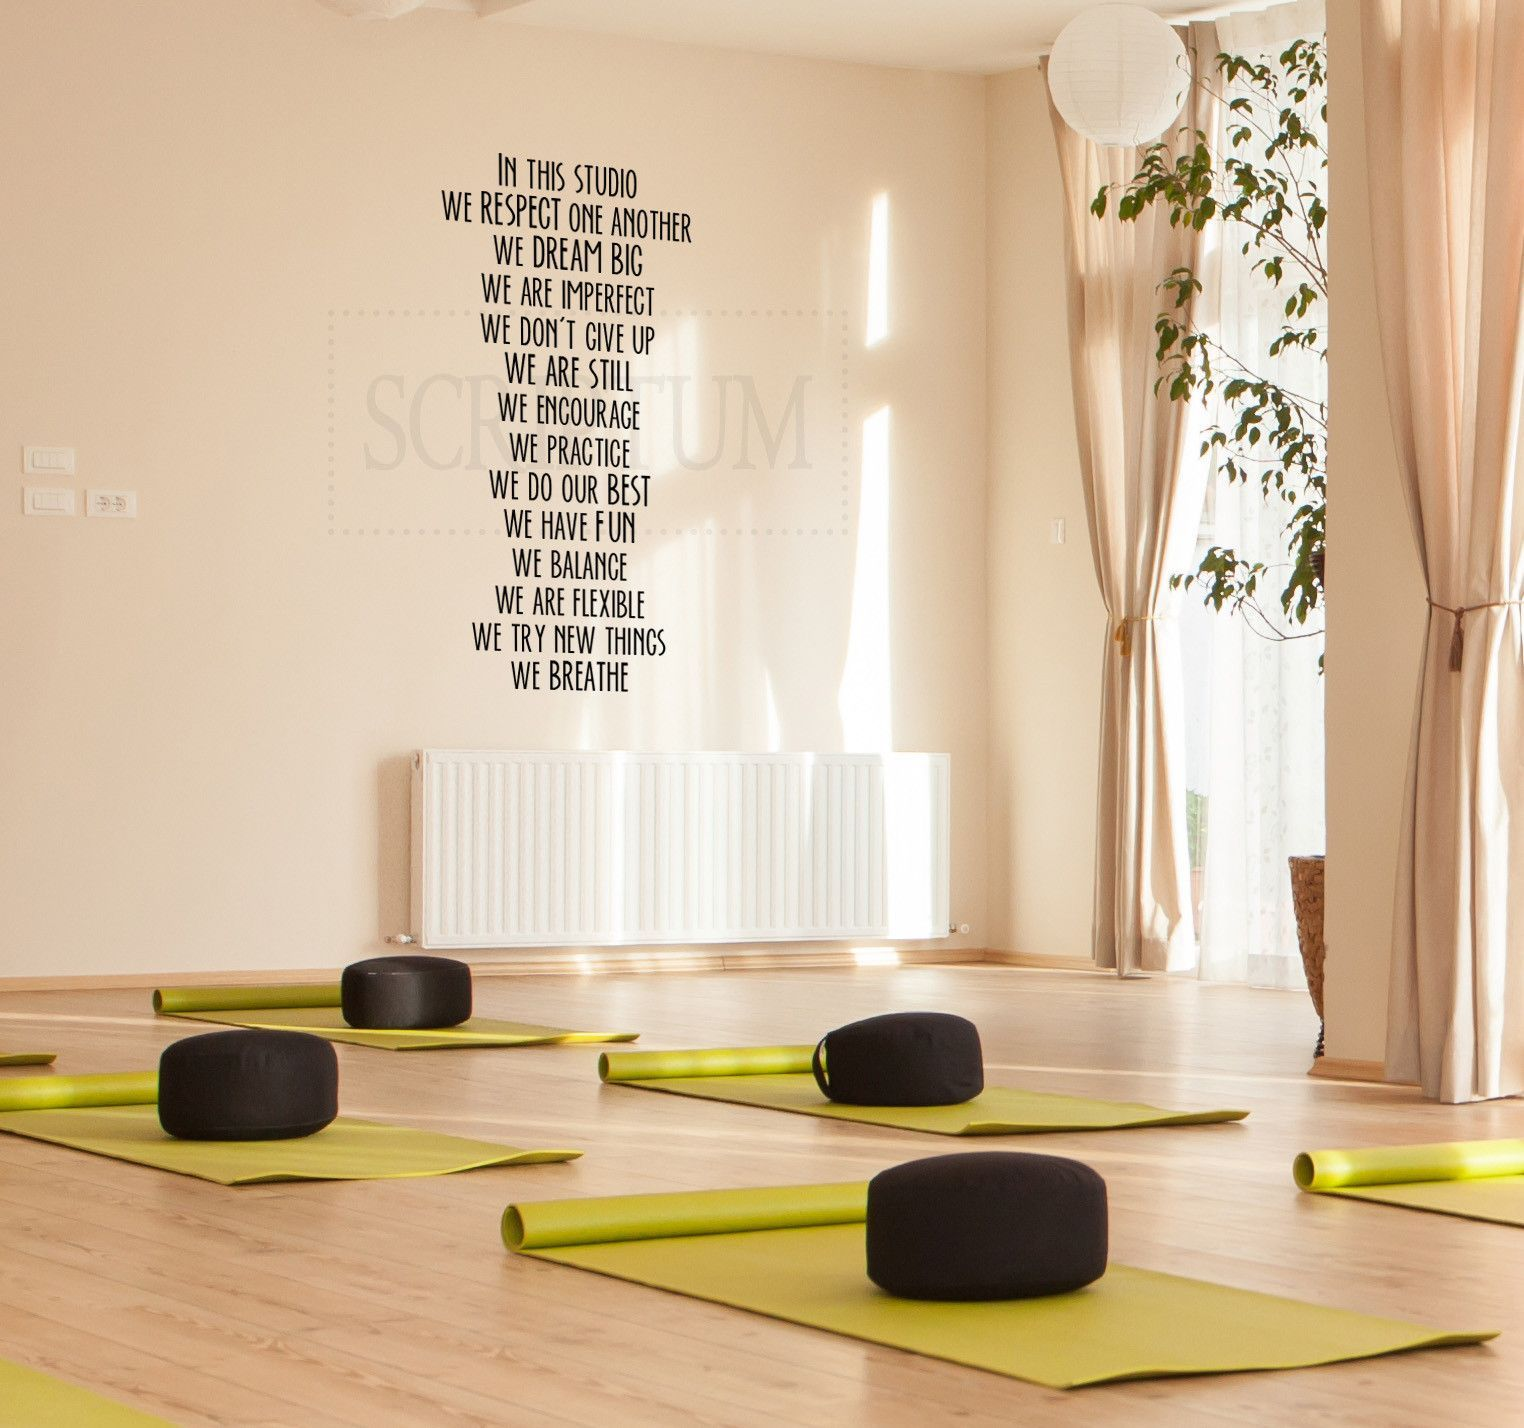 In This Studio Yoga Studio Wall Decal Vinyl Decal Decoración Estudio De Yoga Diseño De Estudio De Yoga Espacio De Meditación